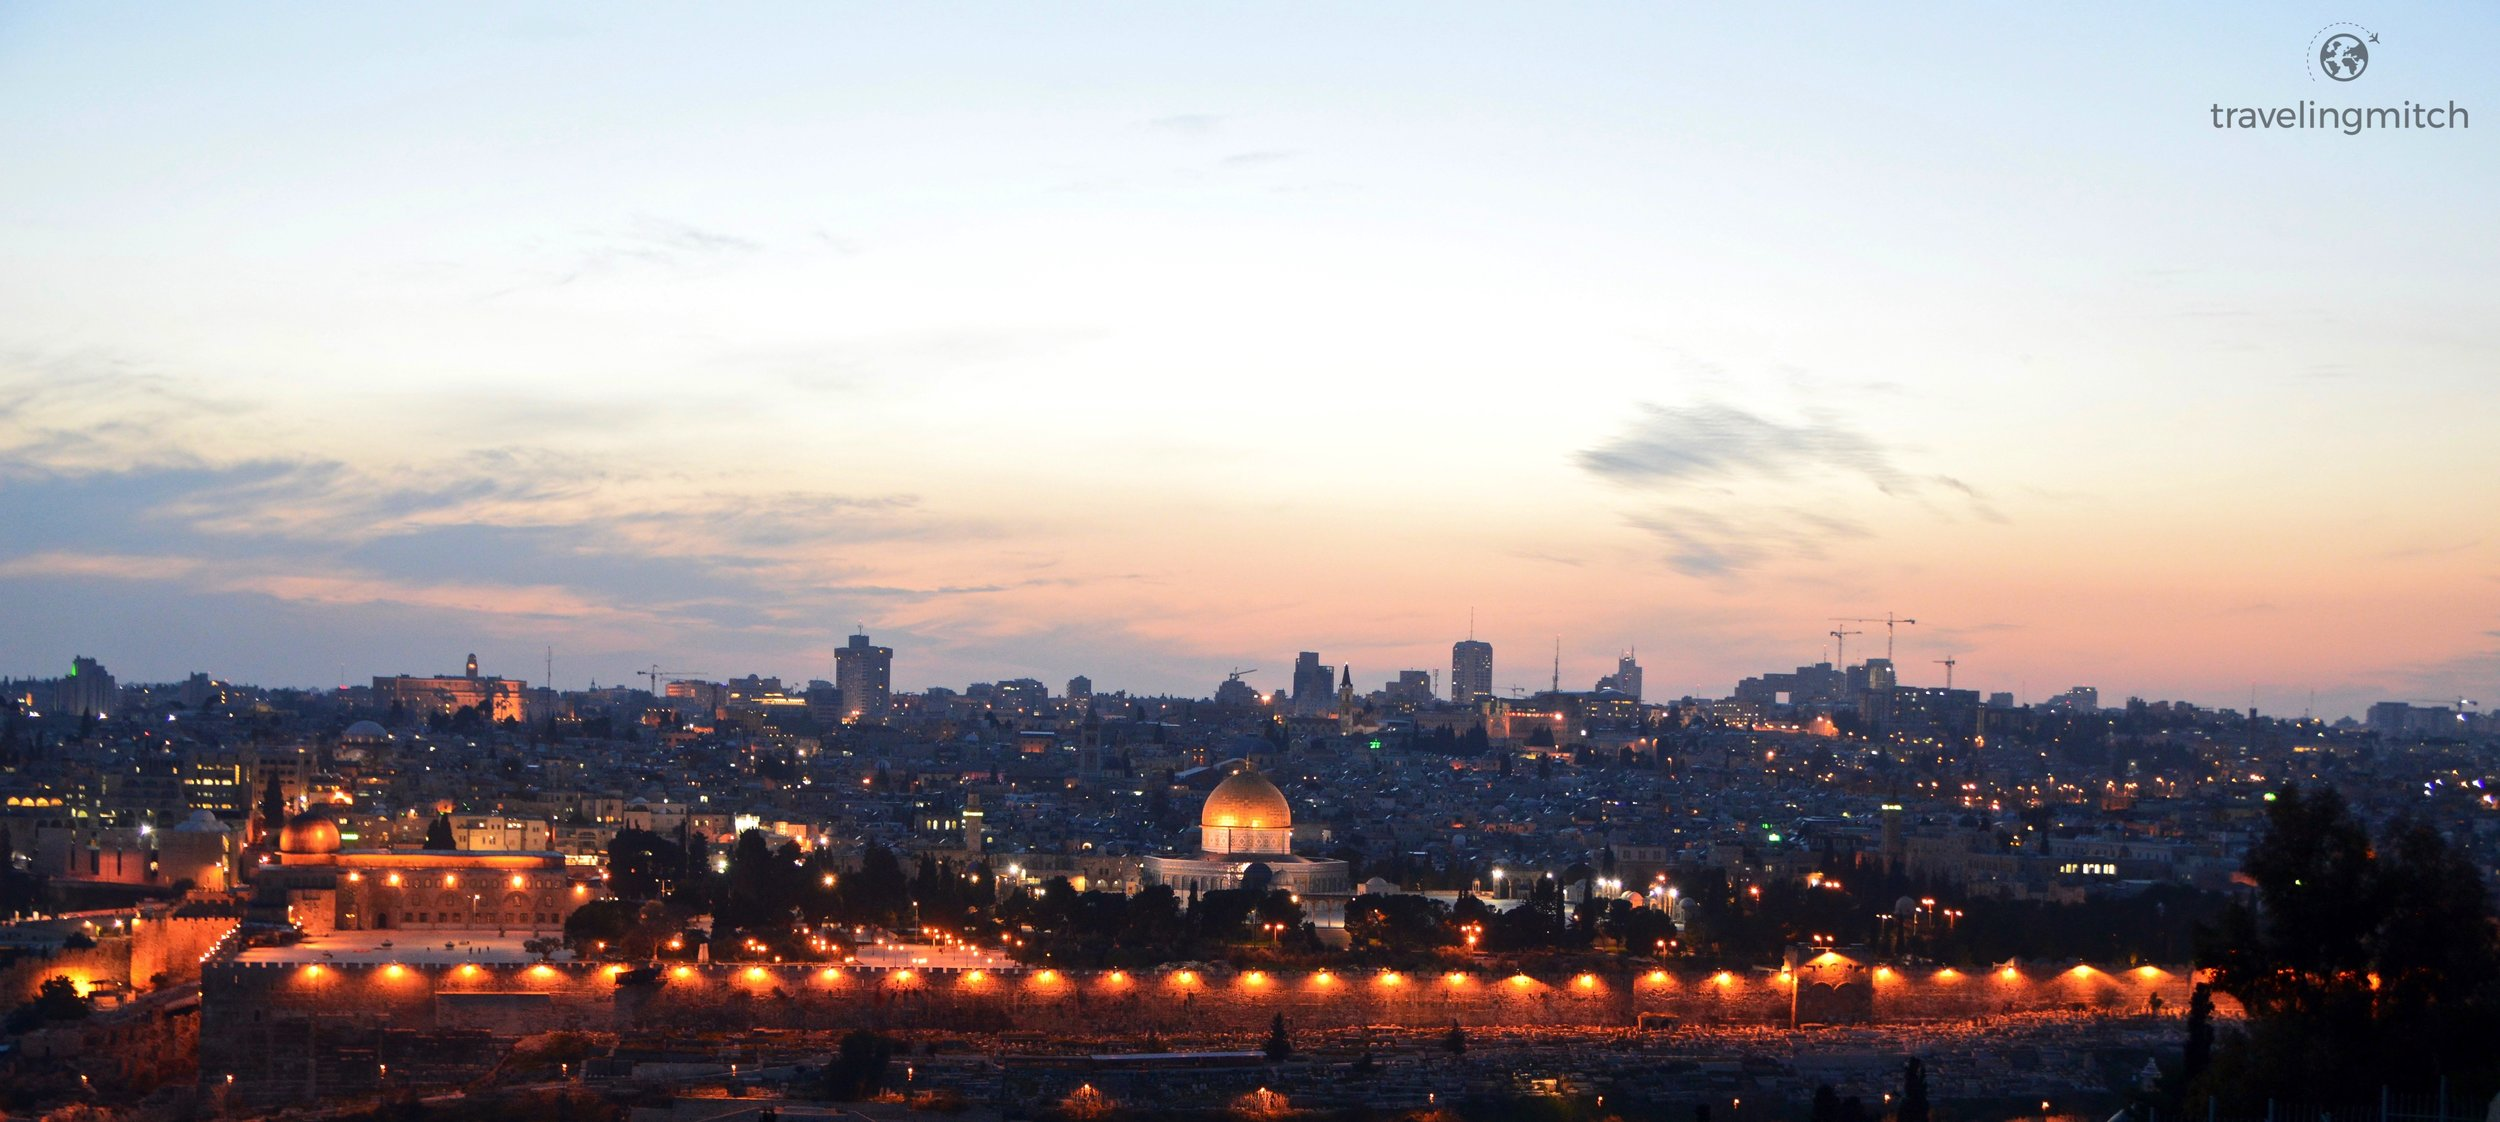 Views of the Old City from the Mount of Olives at dusk - Jerusalem, Israel